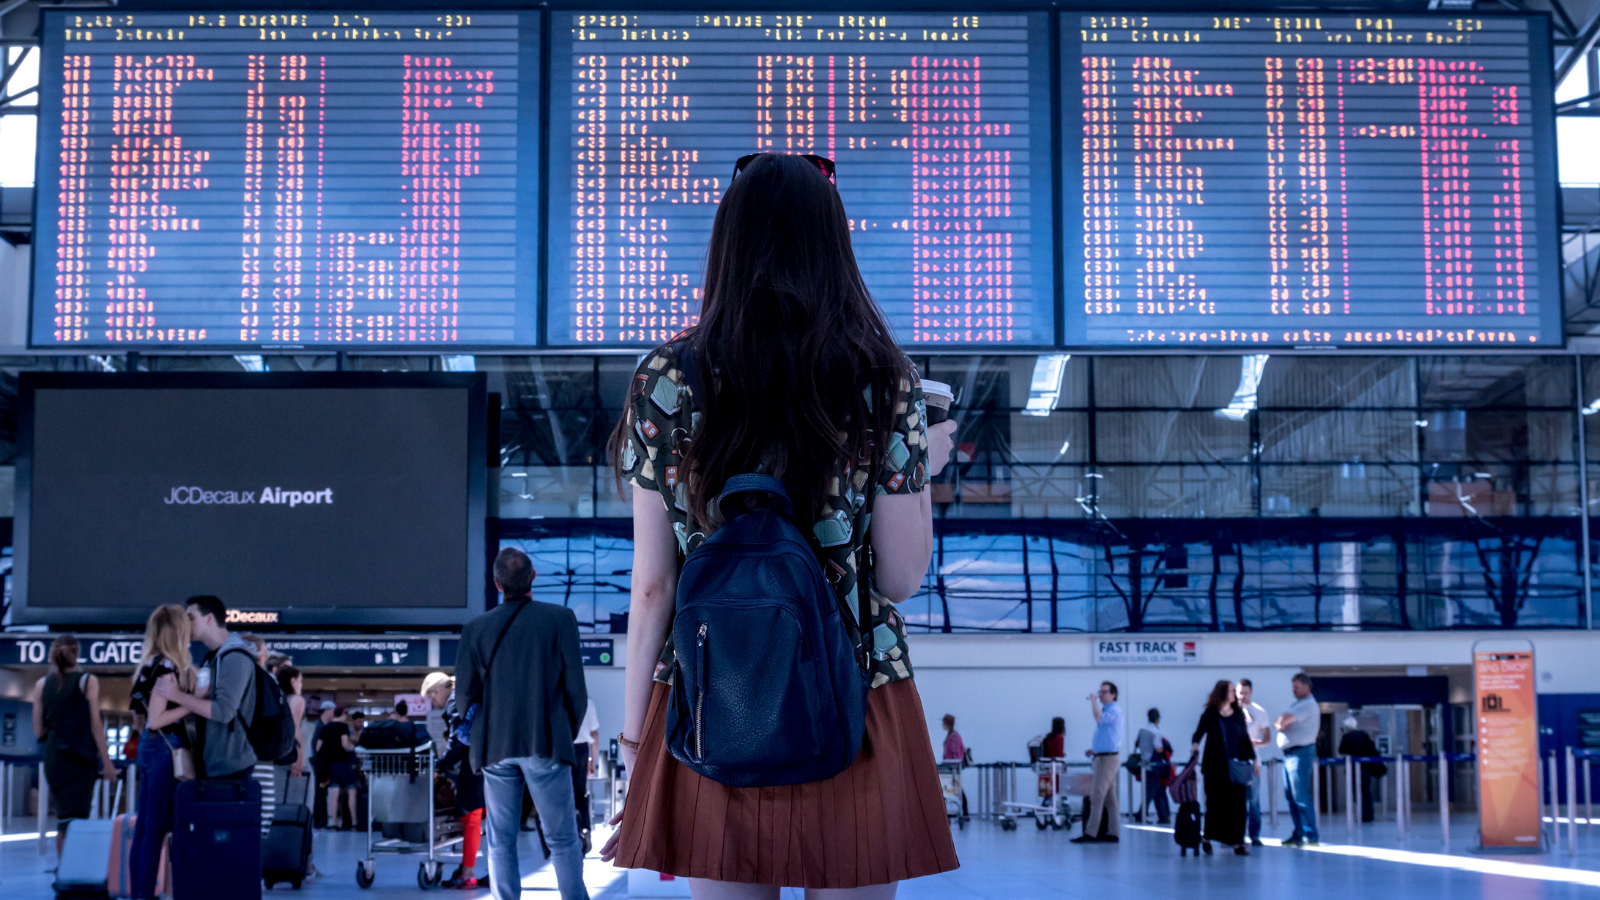 woman looking at flight boarding times in an airport